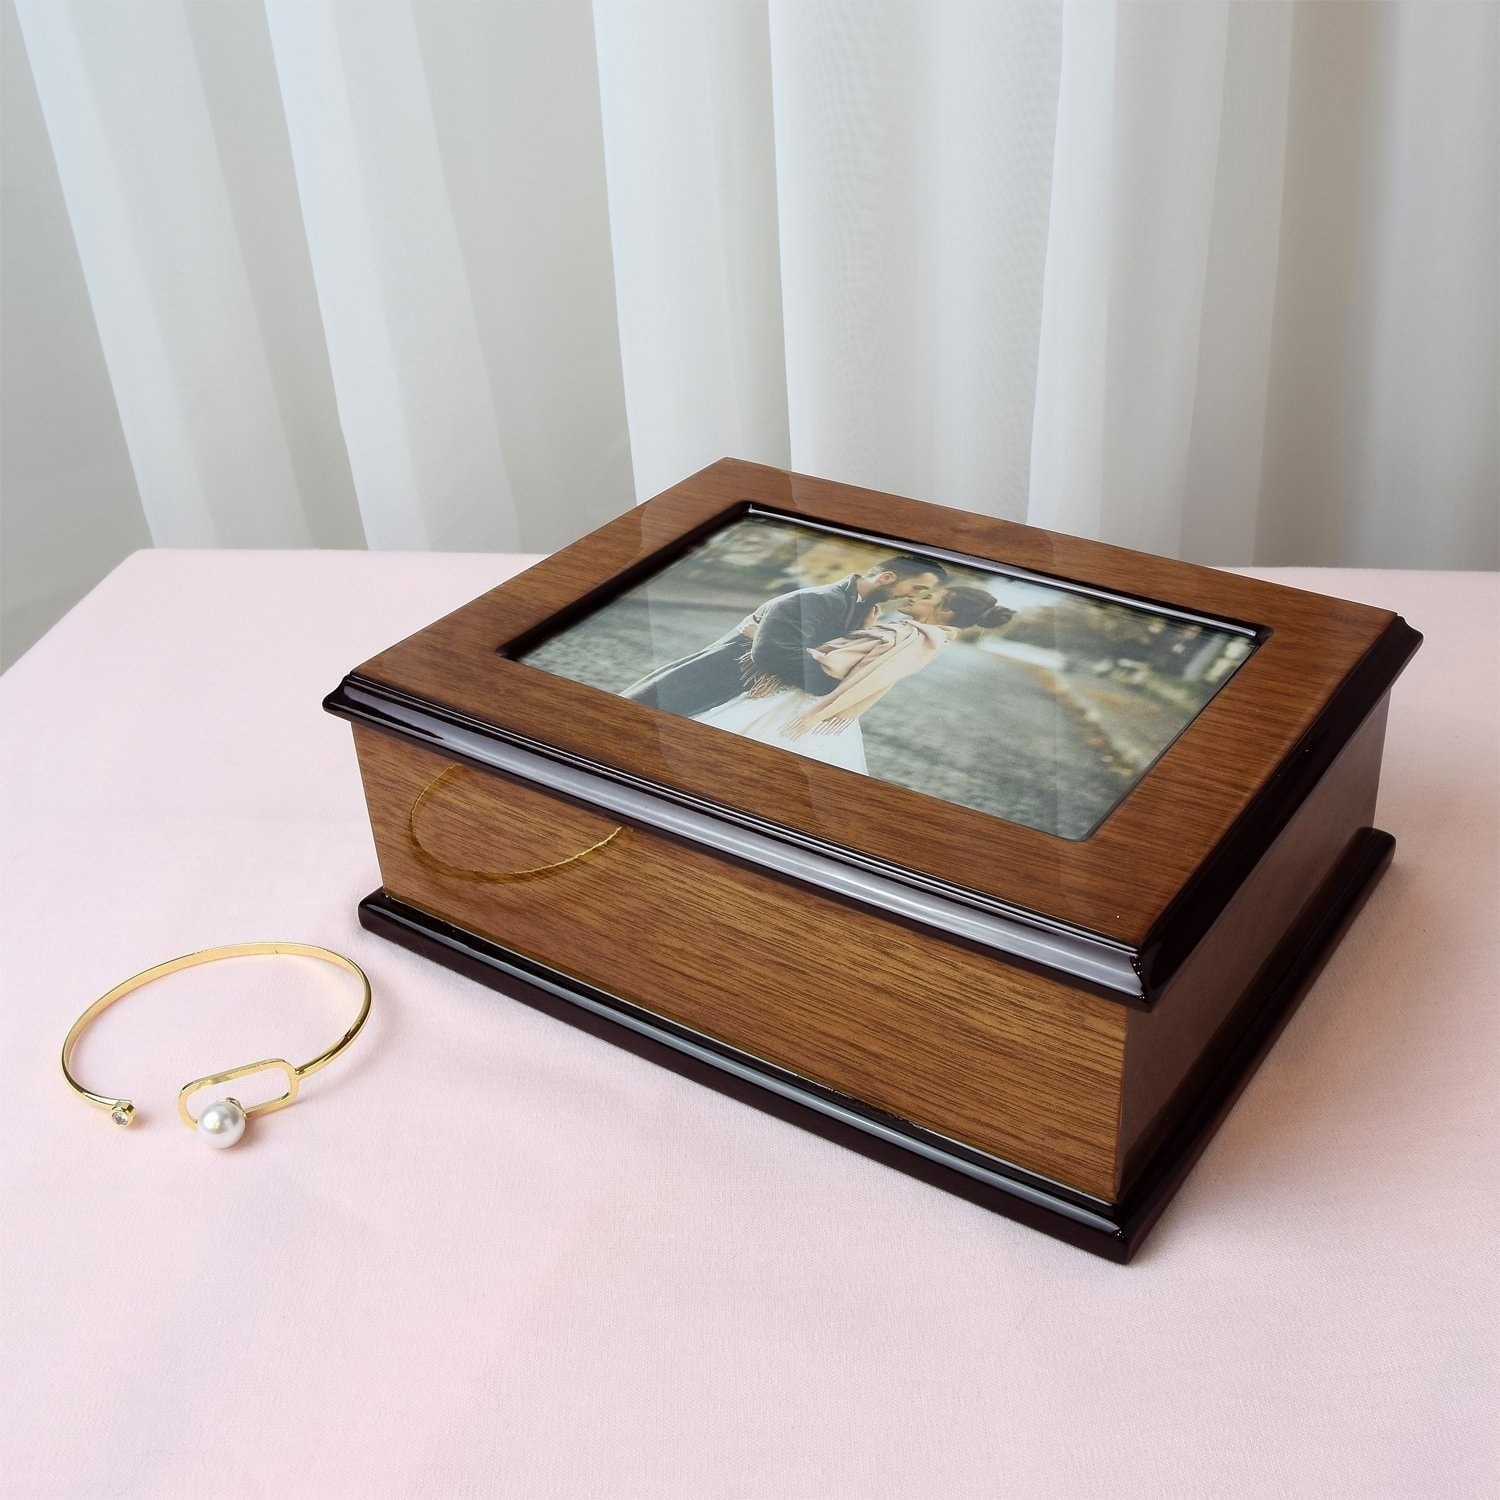 Shop Ikee Design Wooden Glossy Musical Jewelry Box With 4x6 Photo